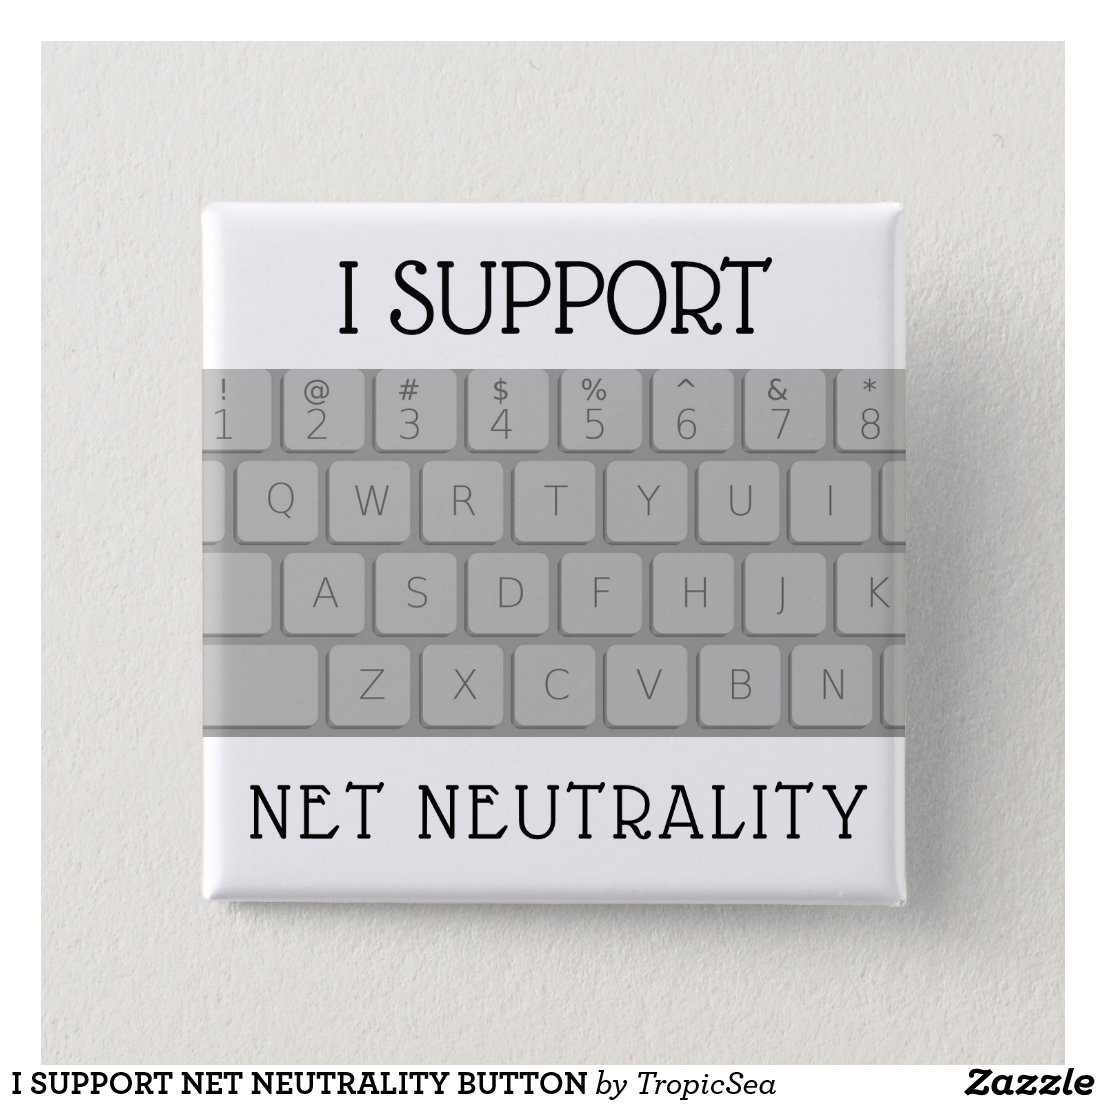 I SUPPORT NET NEUTRALITY BUTTON